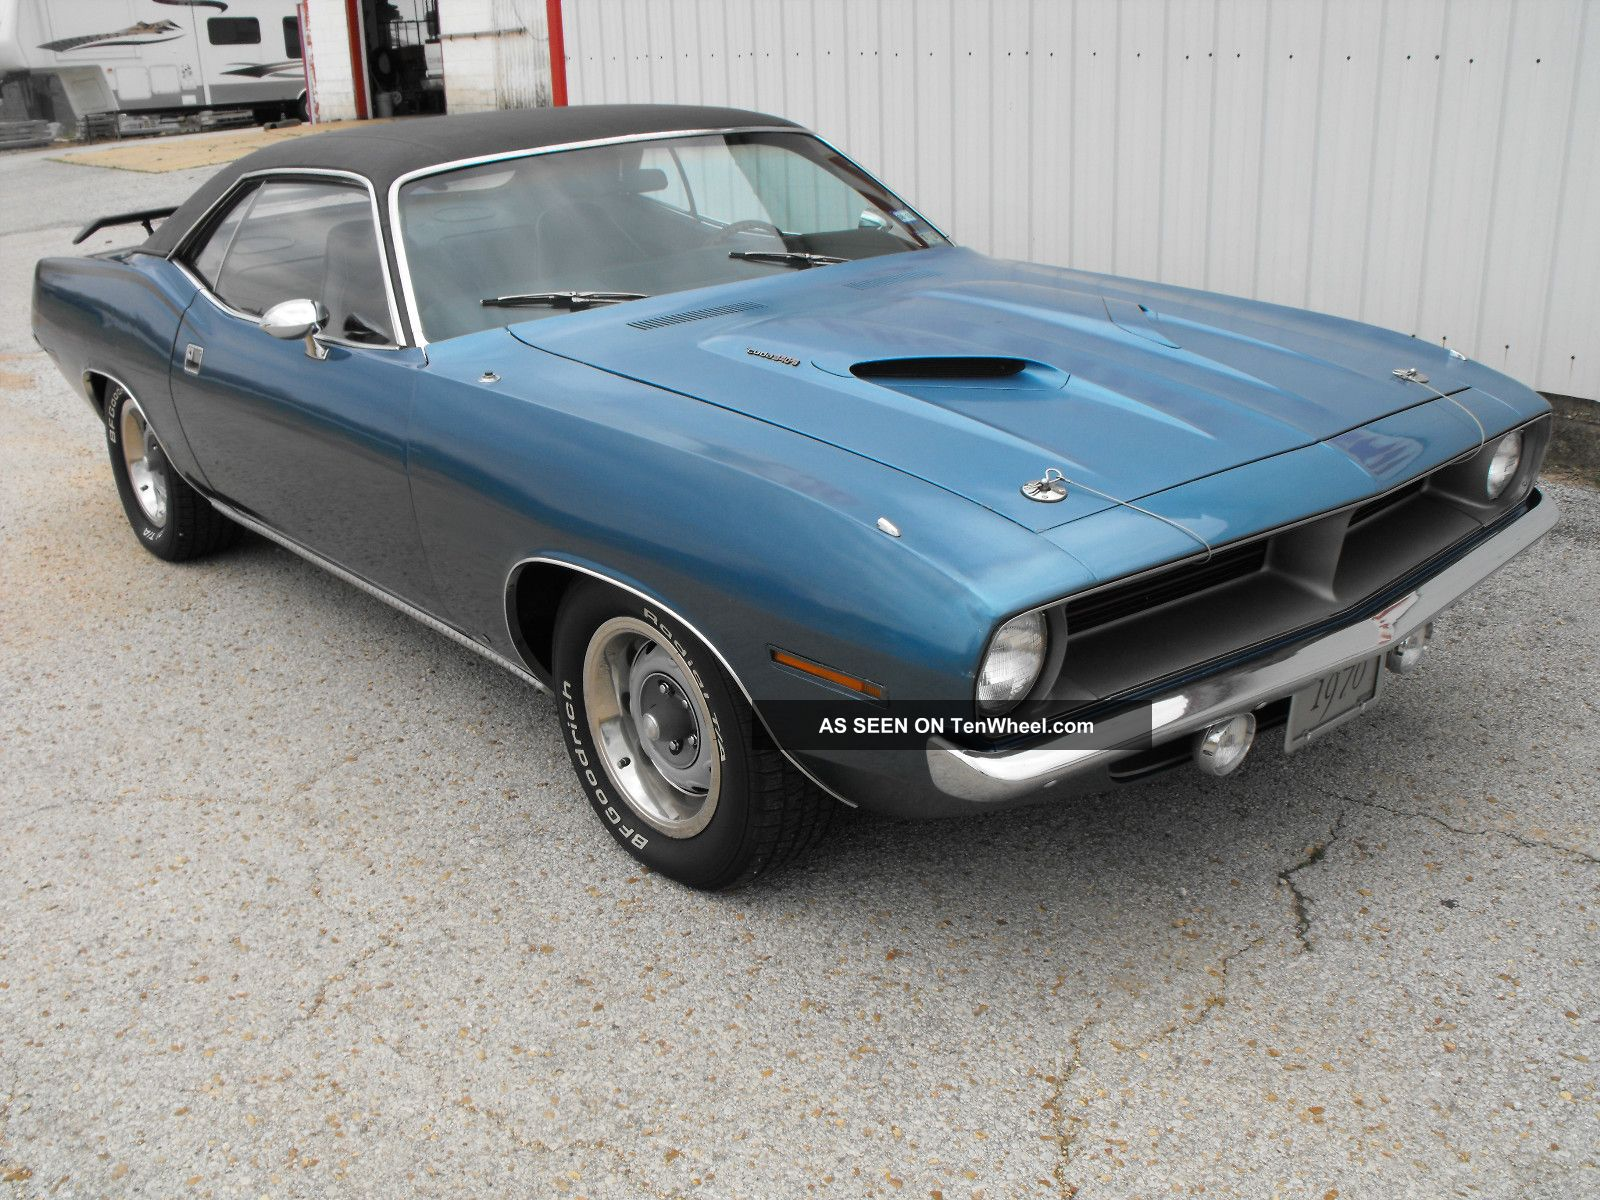 1970 Cuda 340 4 Speed Numbers Matching